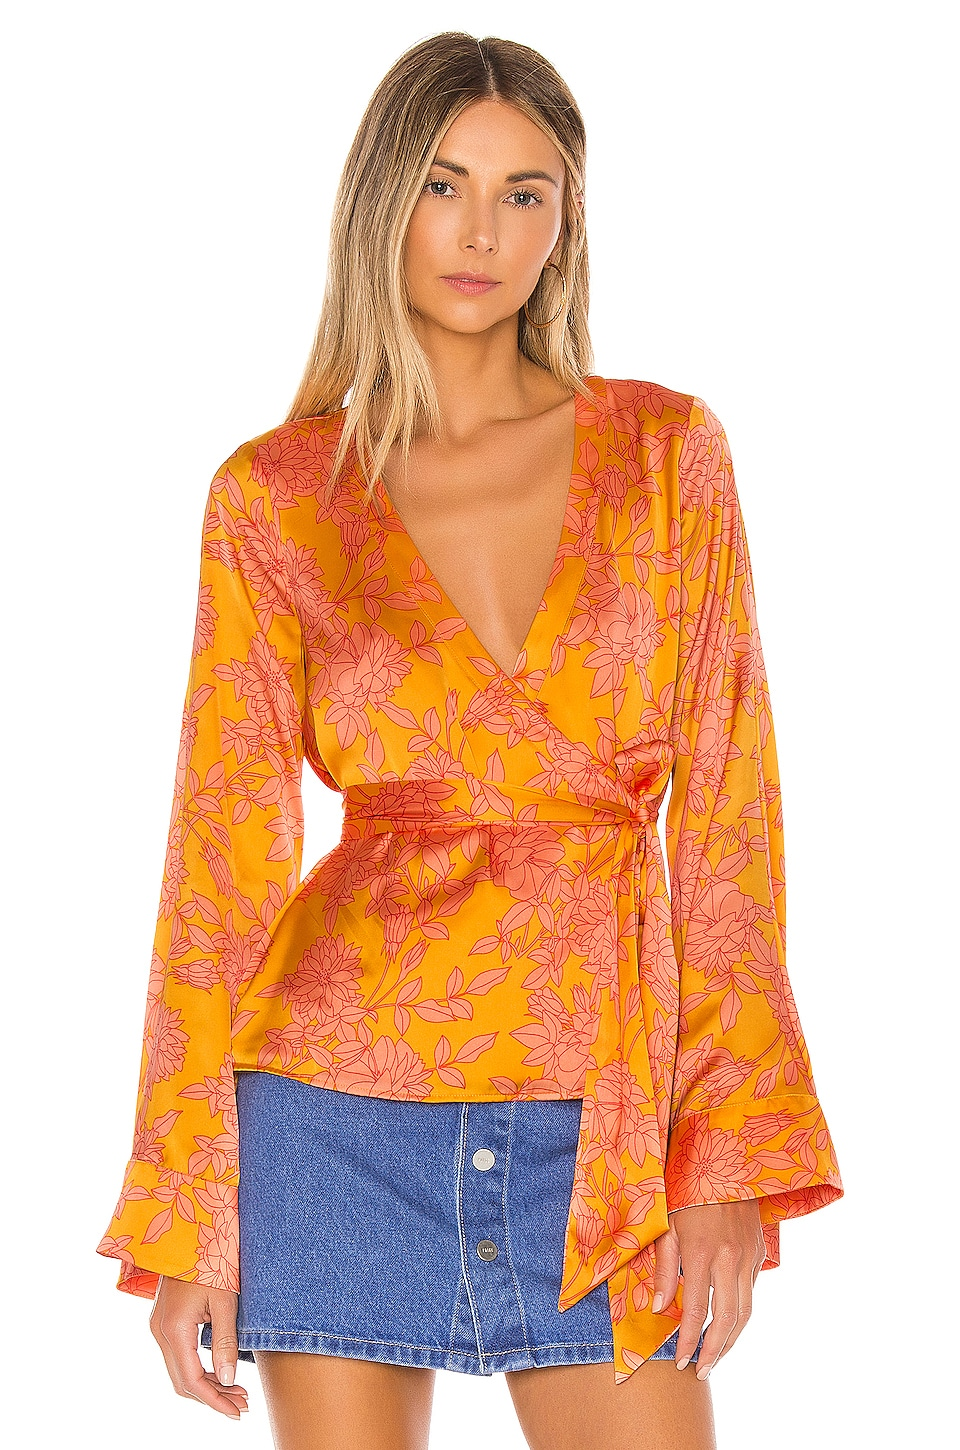 Privacy Please Linnea Top in Marigold Ana Floral